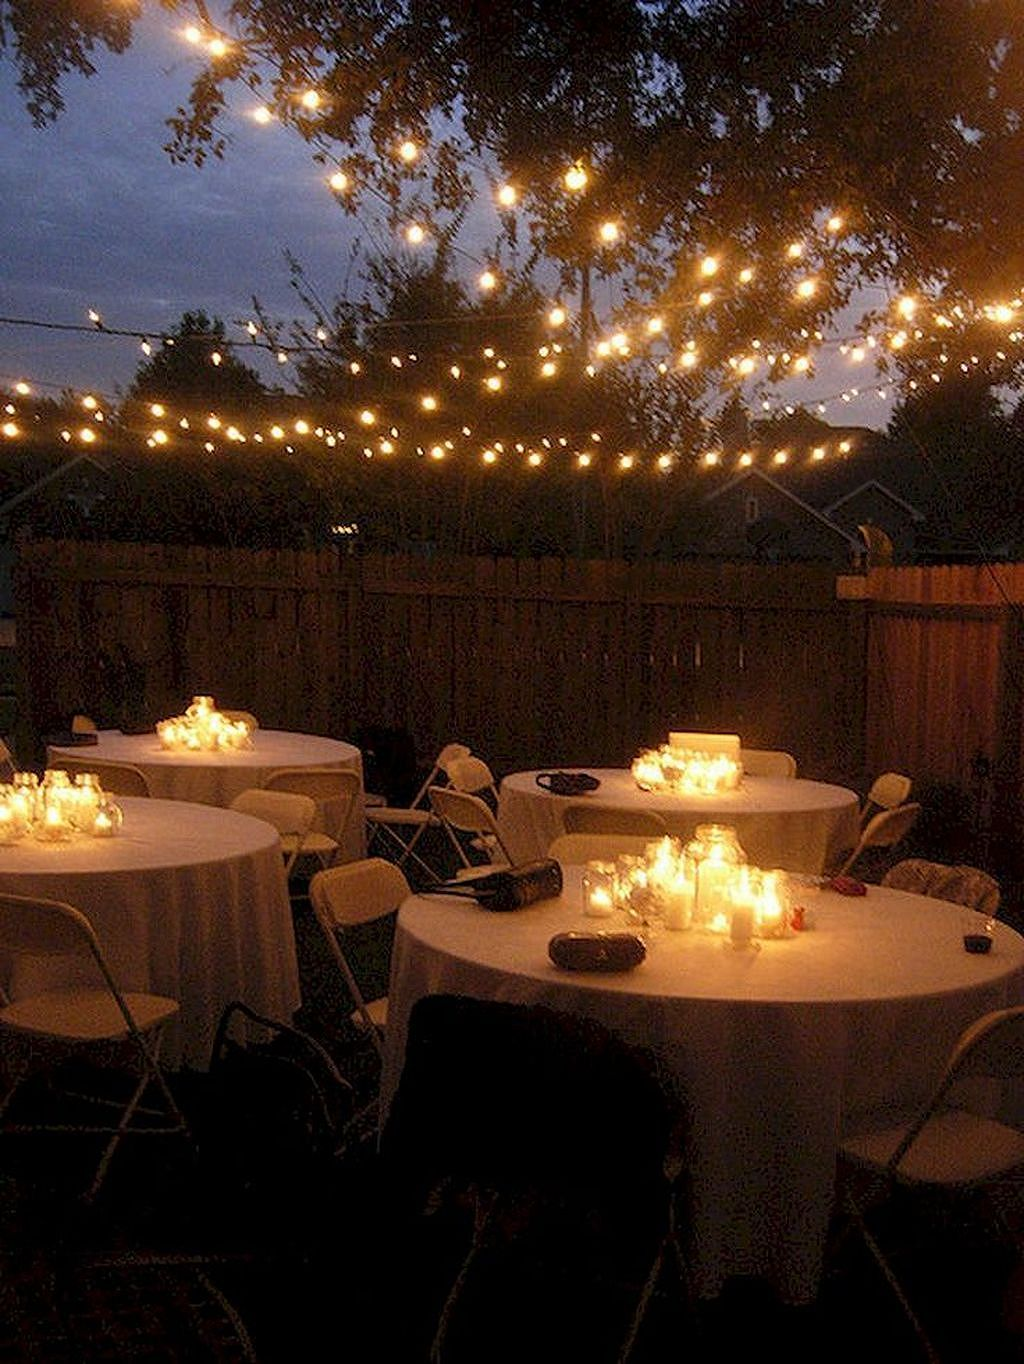 50+ Romantic Backyard Outdoor Weddings Ideas | Romantic ... on Romantic Backyard Ideas id=55966